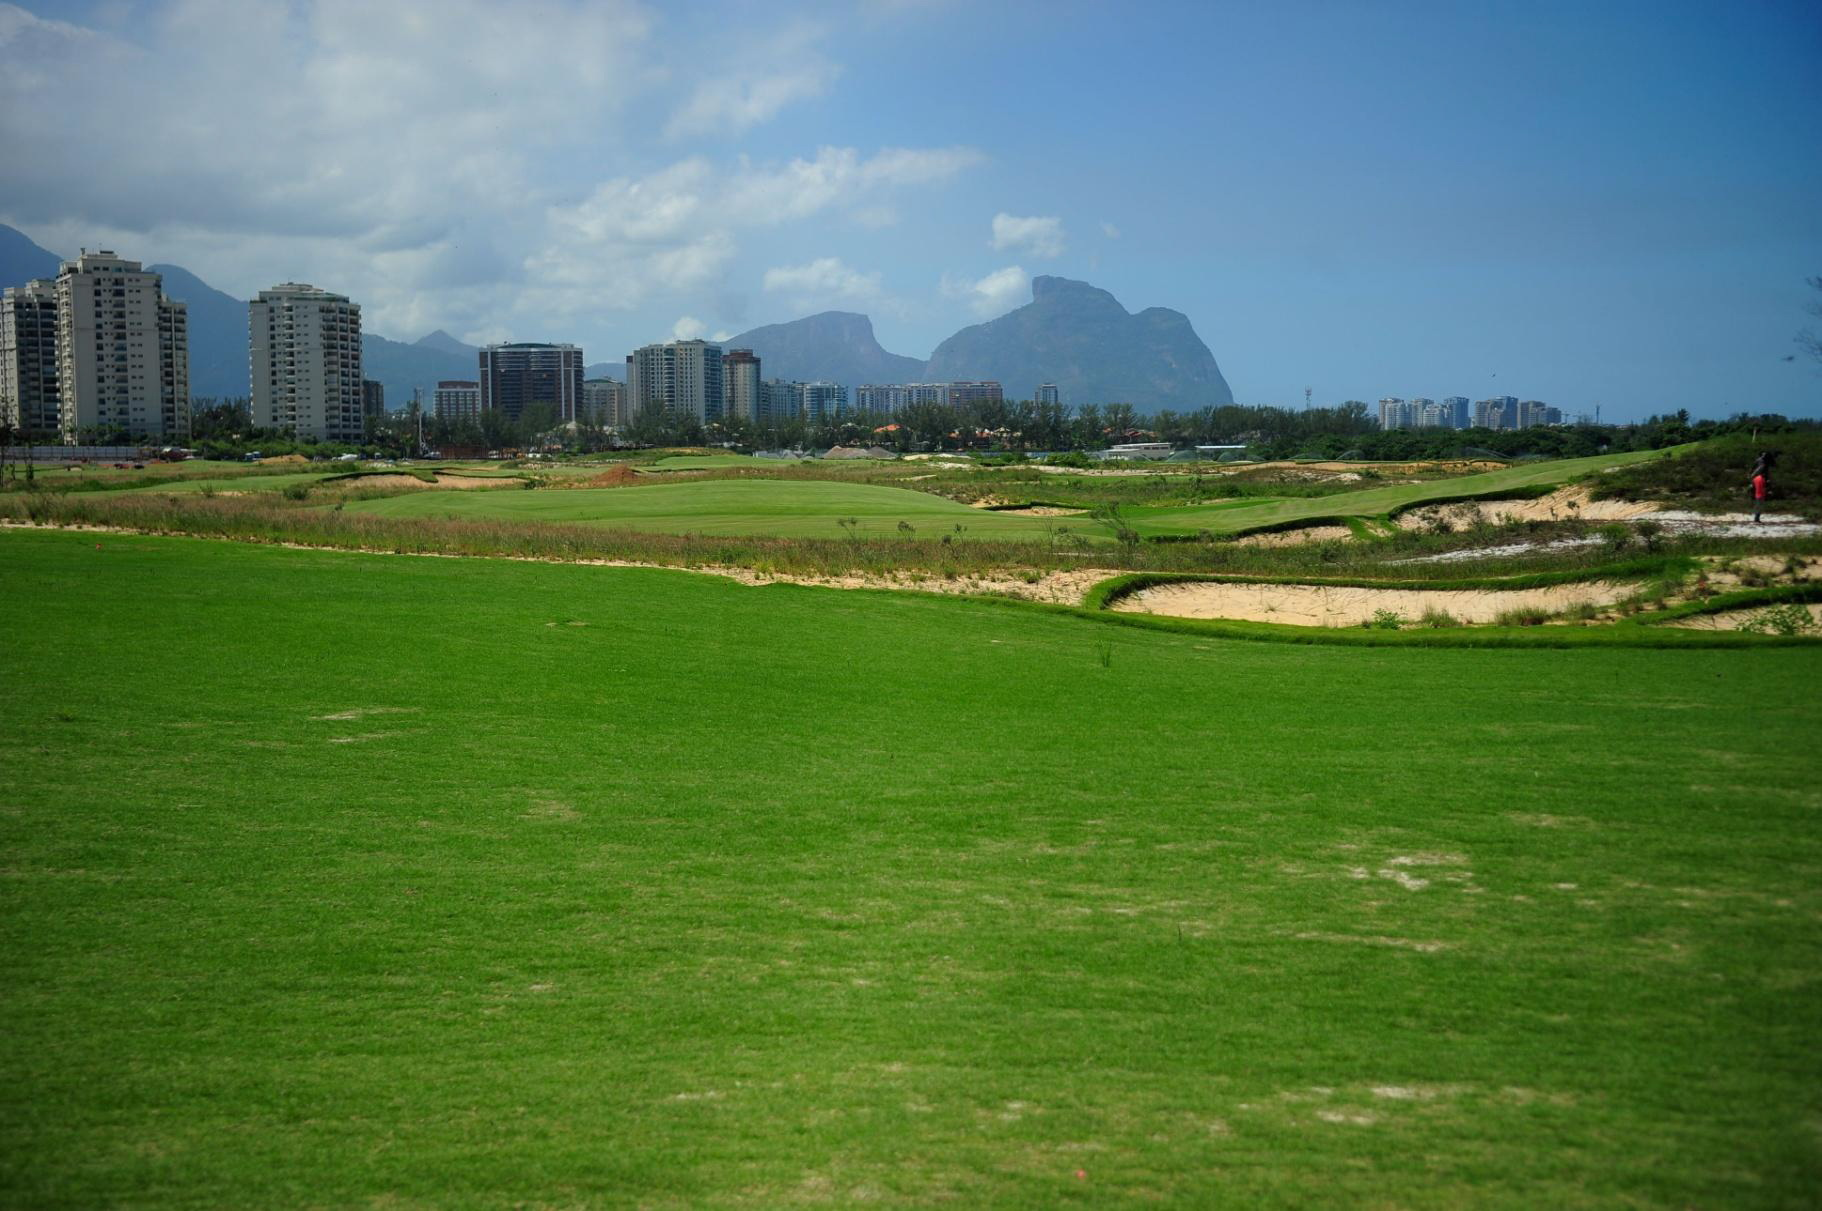 The New Olympic Golf Course: Risks vs. Benefits?